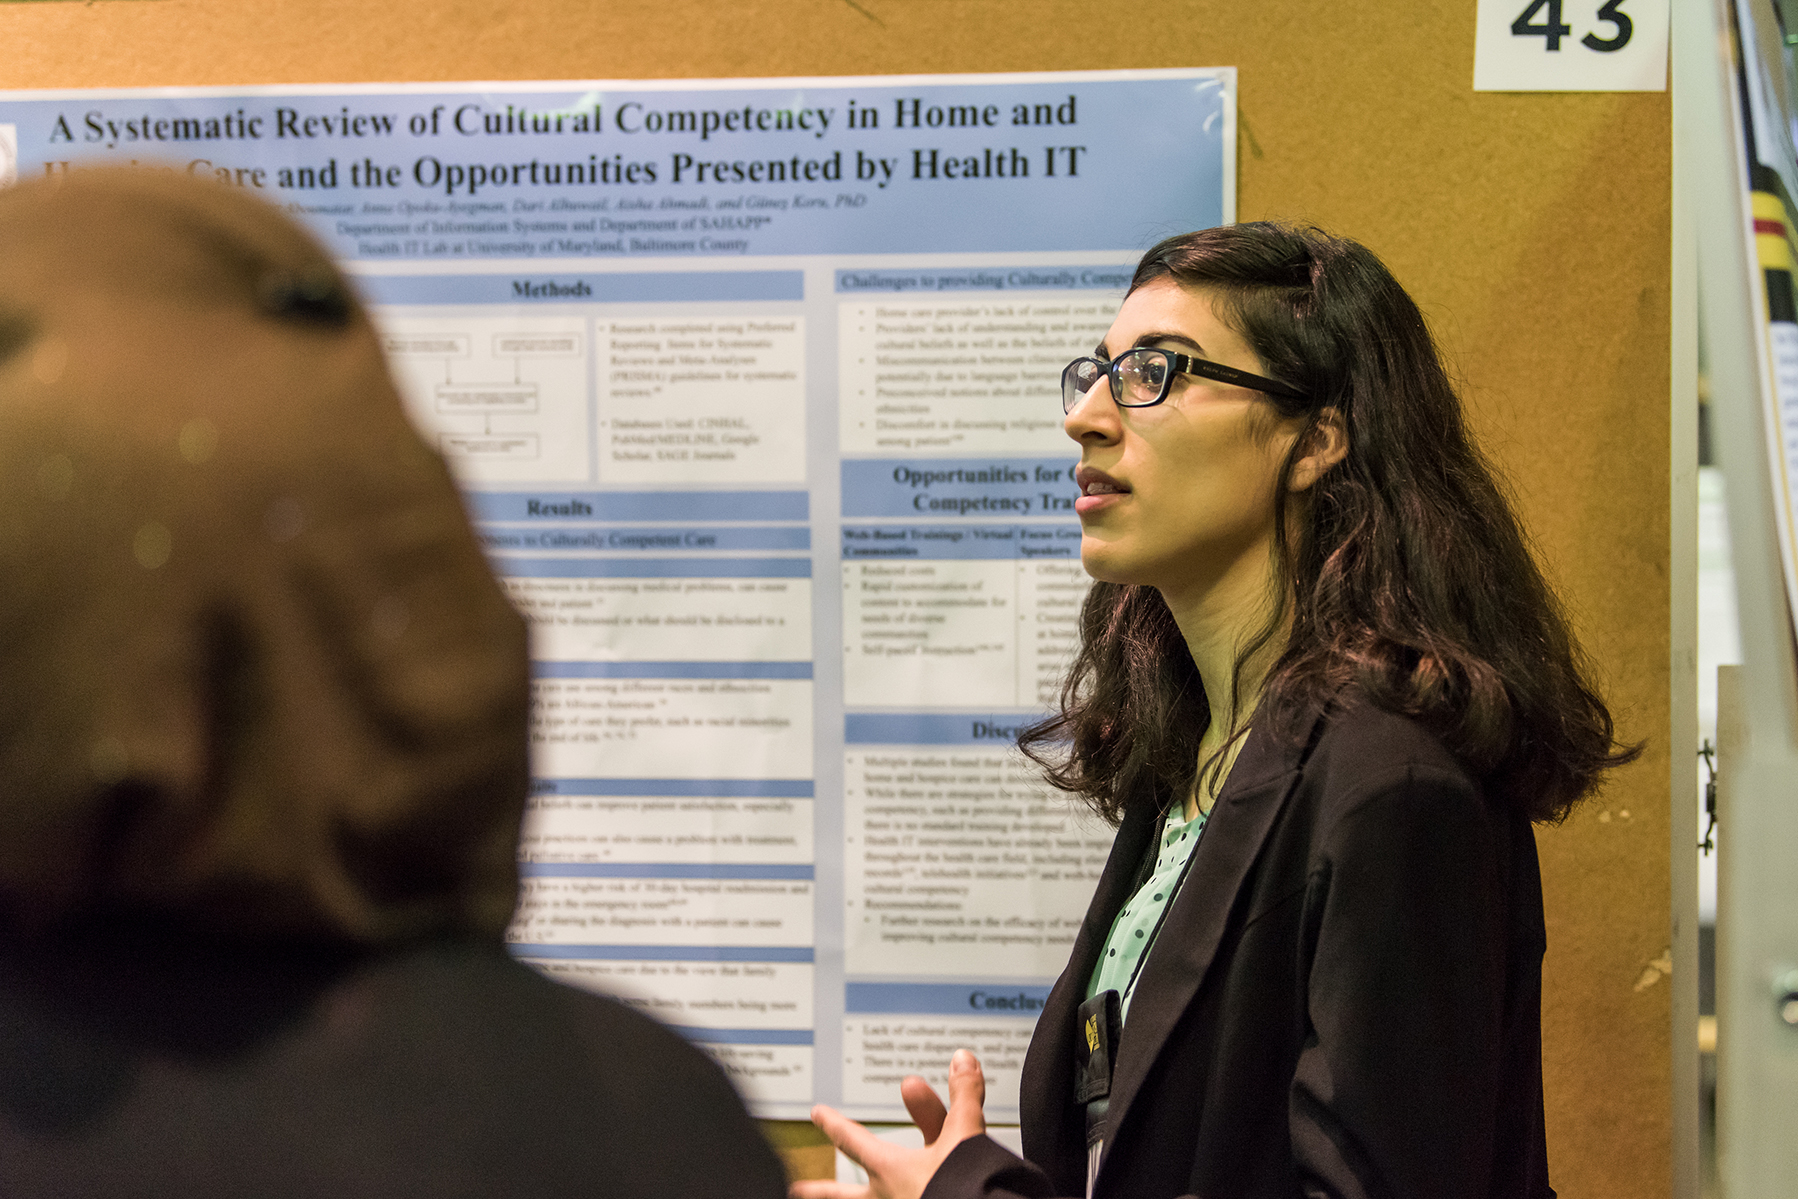 Nour Aboumatar presents findings for URCAD